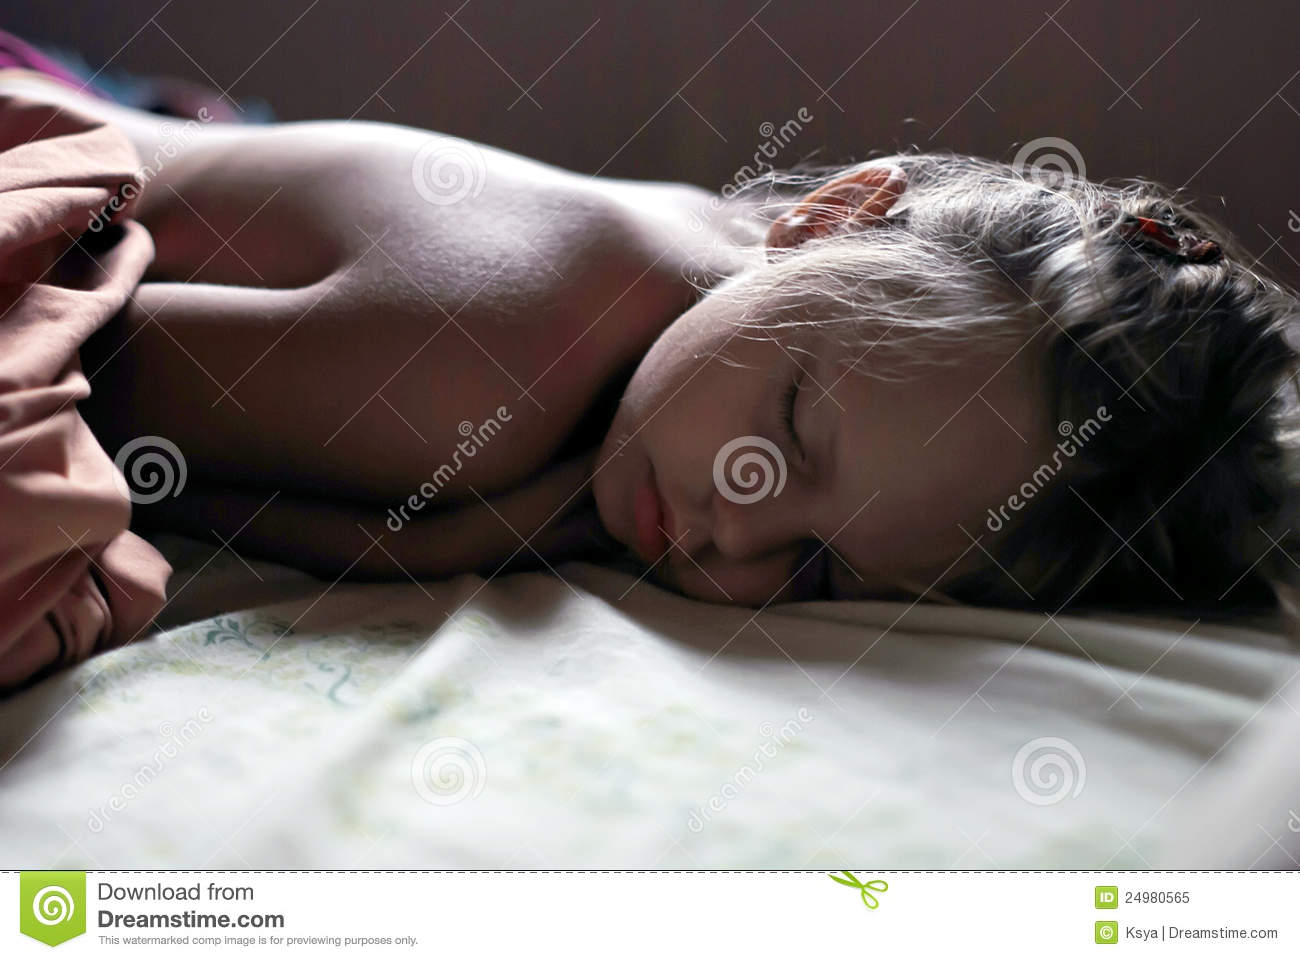 Little girl is sleeping well in her bed